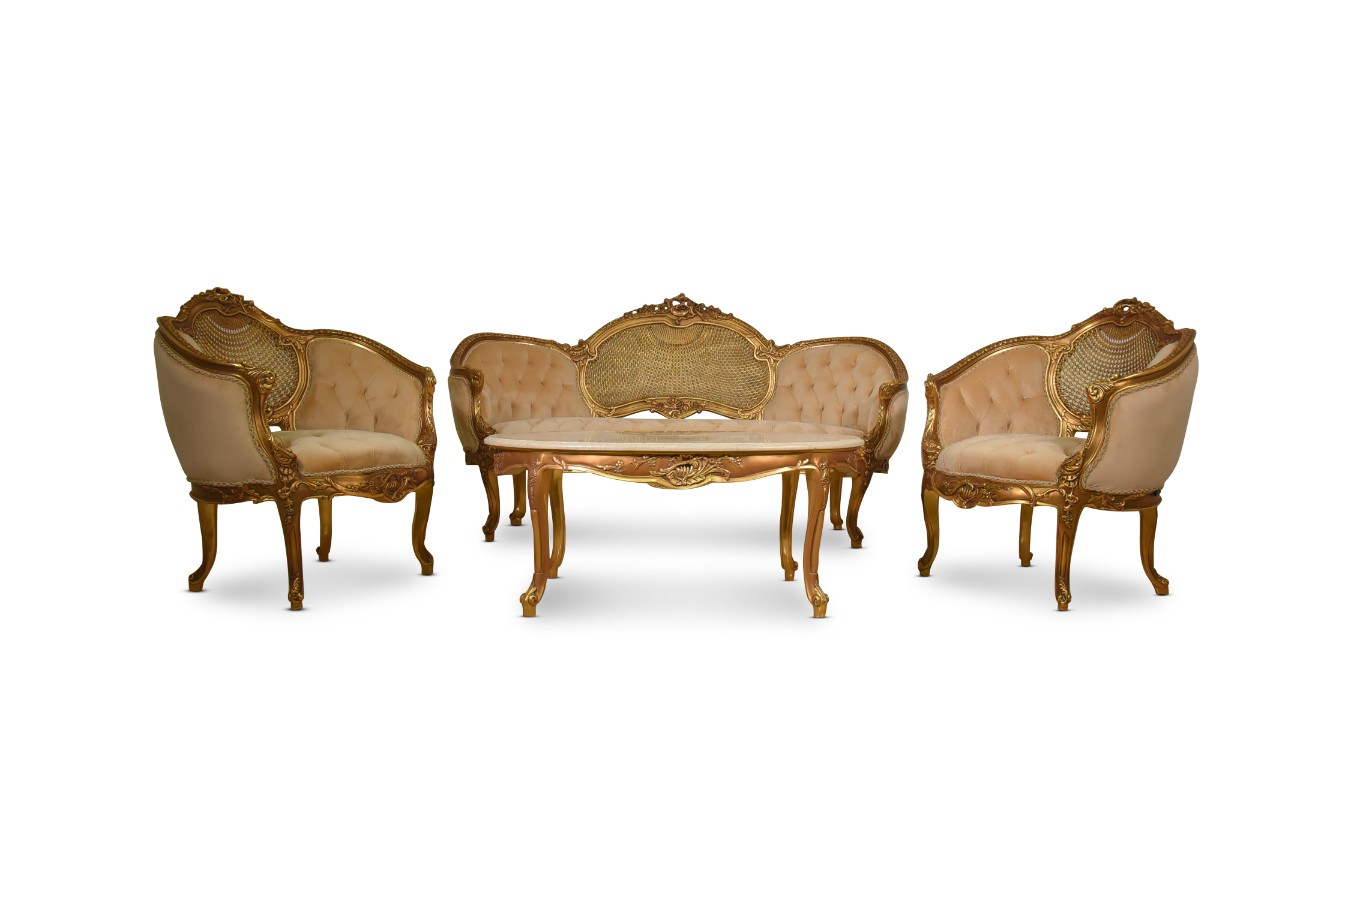 Made To Order / French Style , French Cane Art, 24k Gold Leaf Hand Carved Wood Frame , Tufted Cream Velvet , Living Room Set